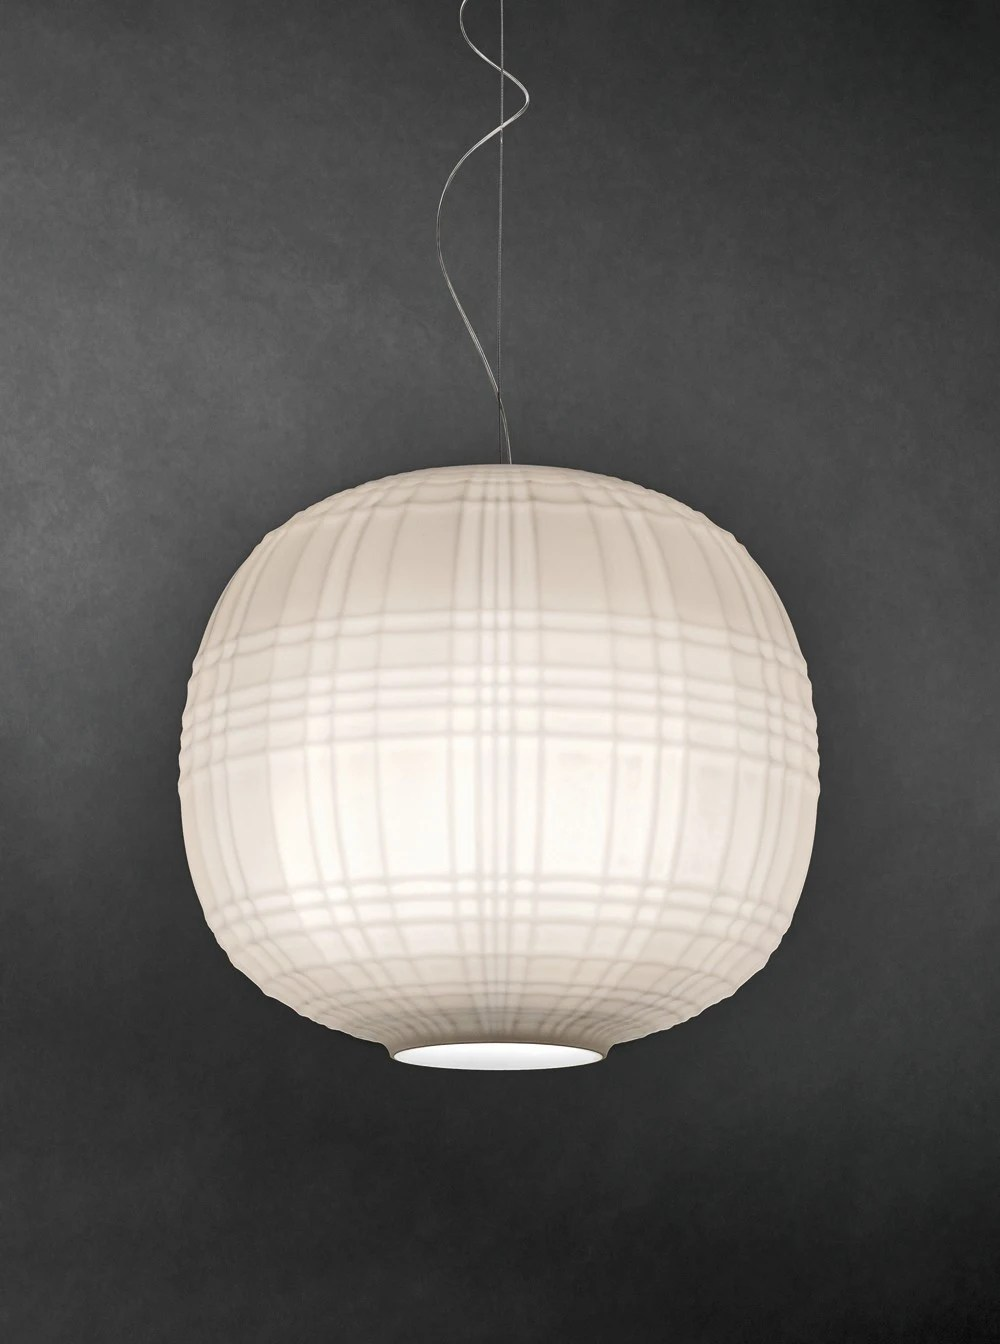 Foscarini Lights Foscarini Tartan Suspension Lamp